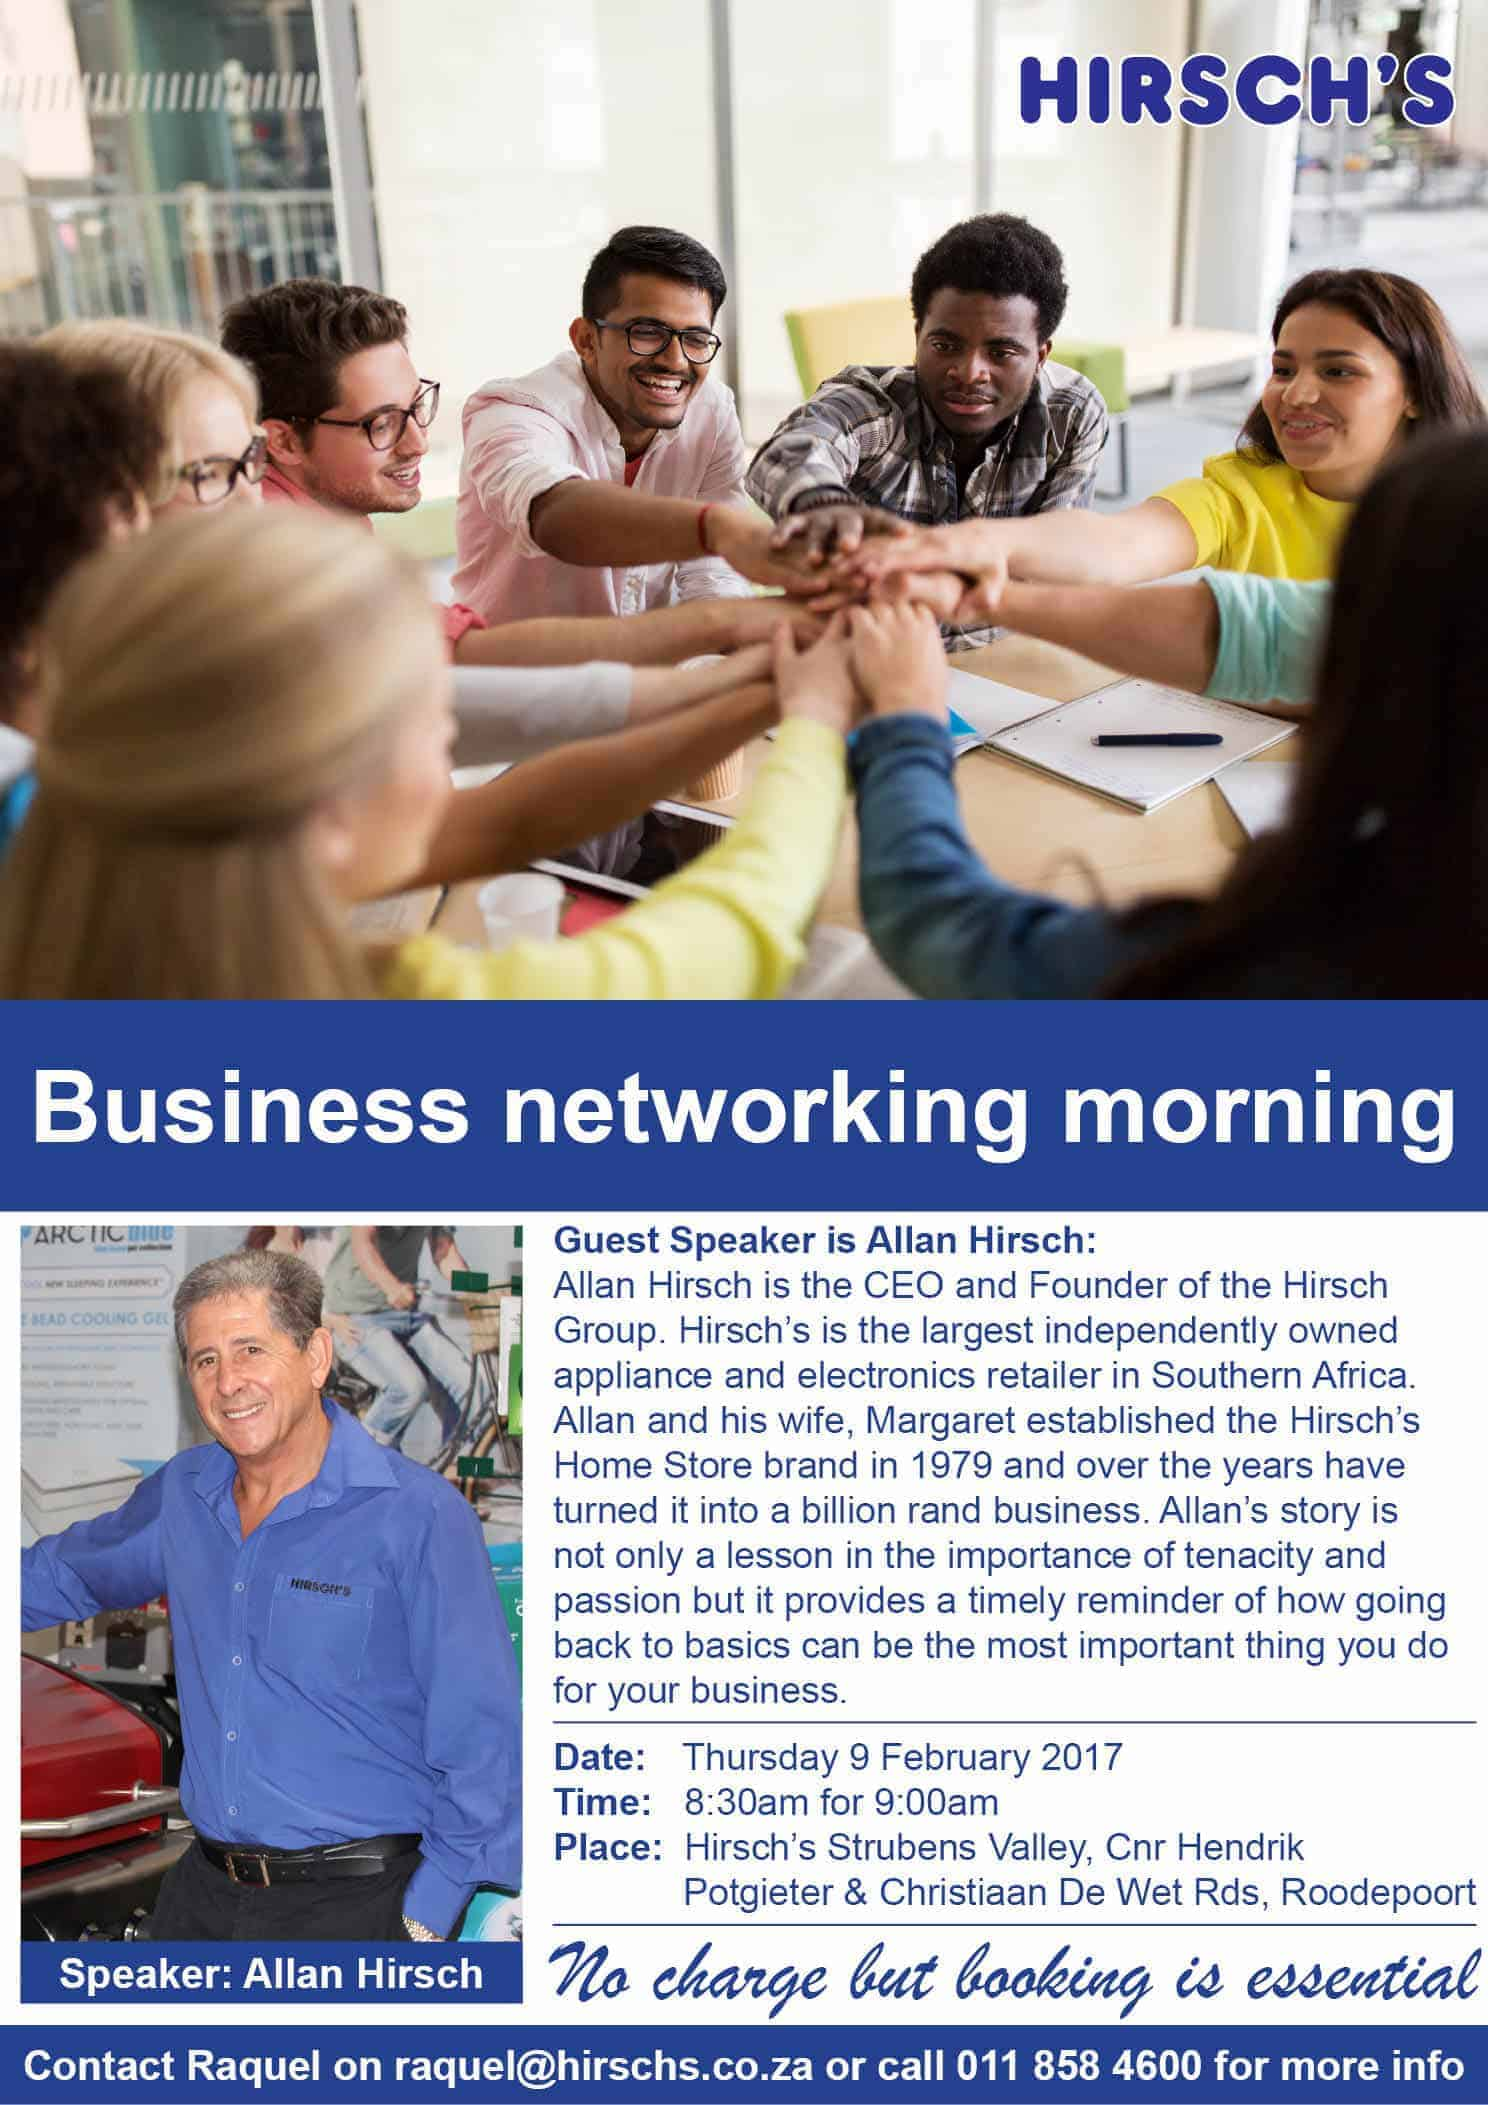 Hirschs Business Networking Morning South Africa